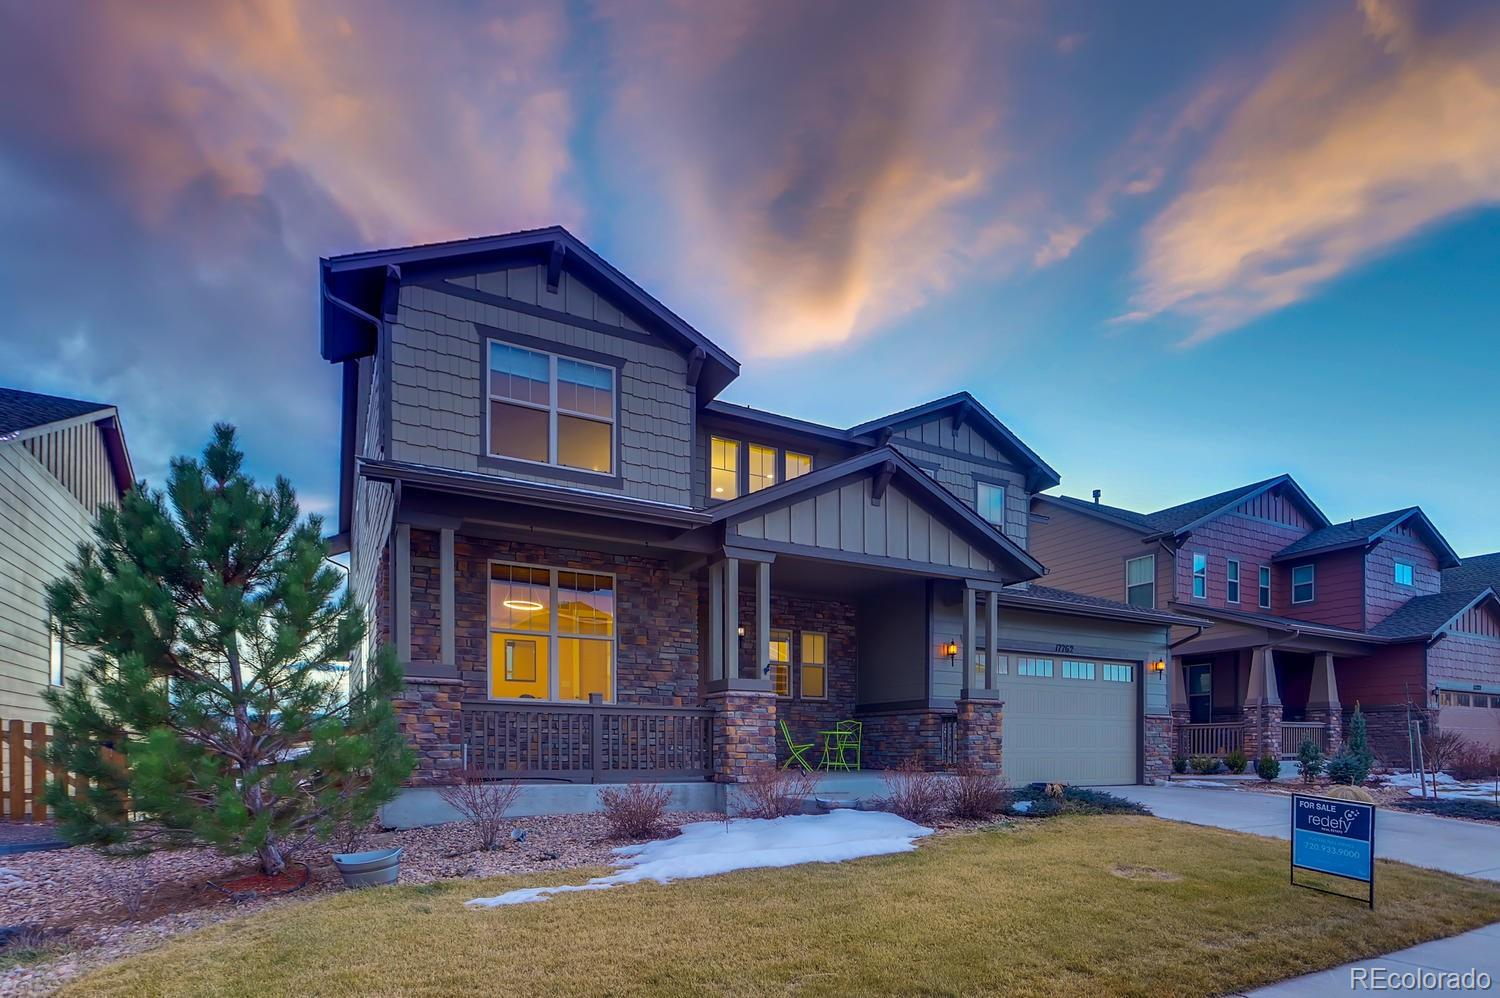 MLS# 4767152 - 2 - 17762 W 83rd Place, Arvada, CO 80007